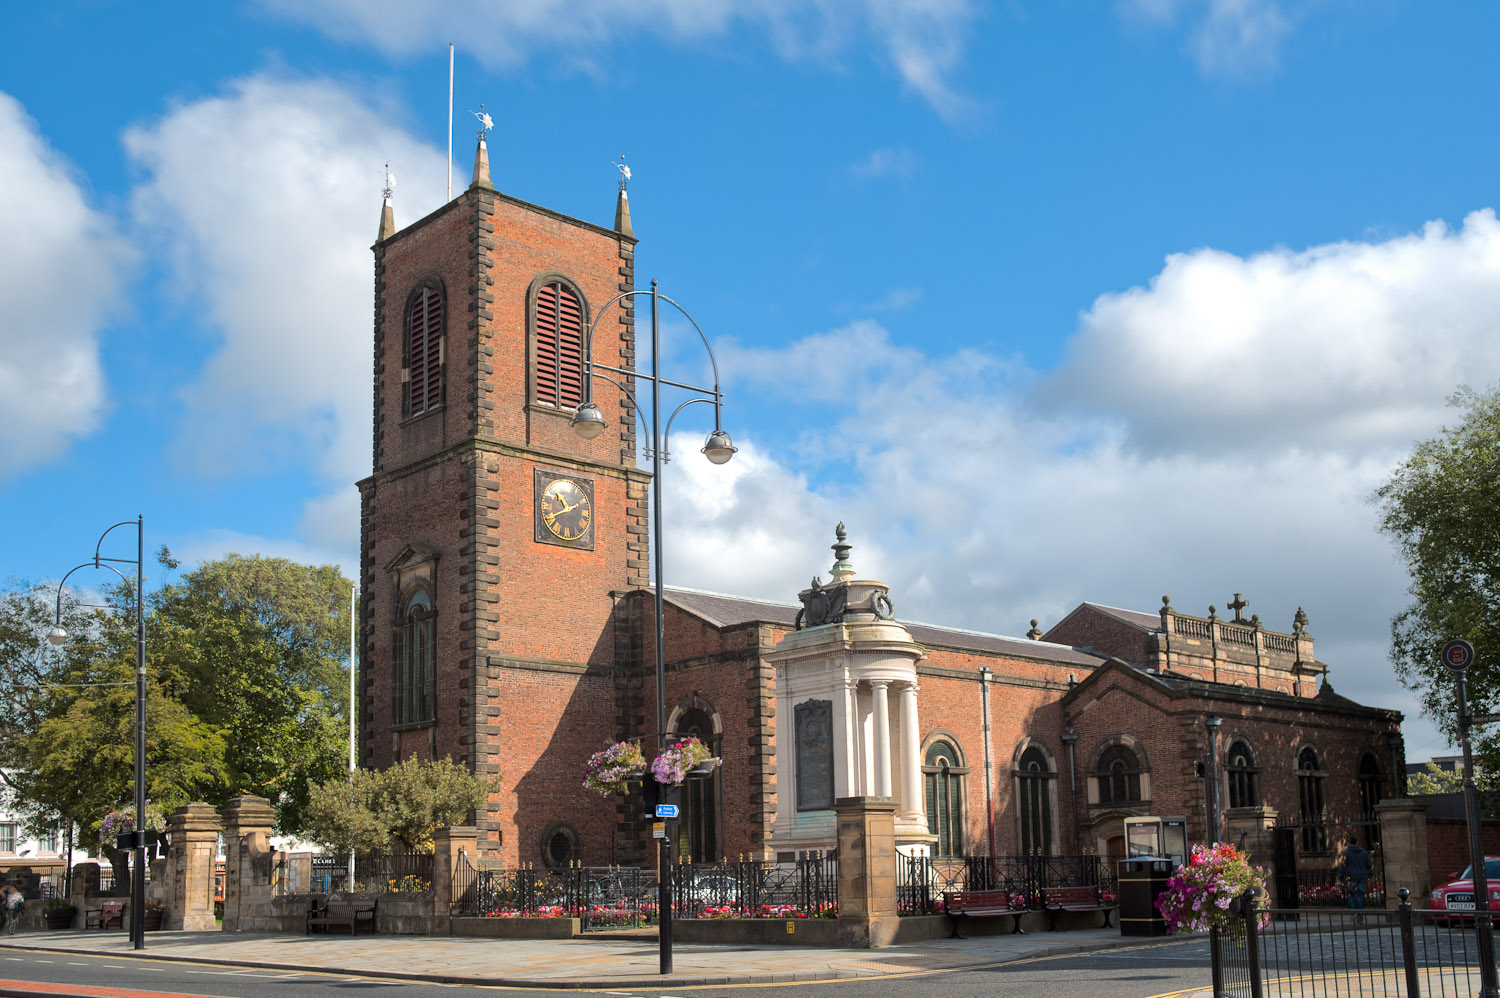 Stockton Parish Church, Stockton on Tees